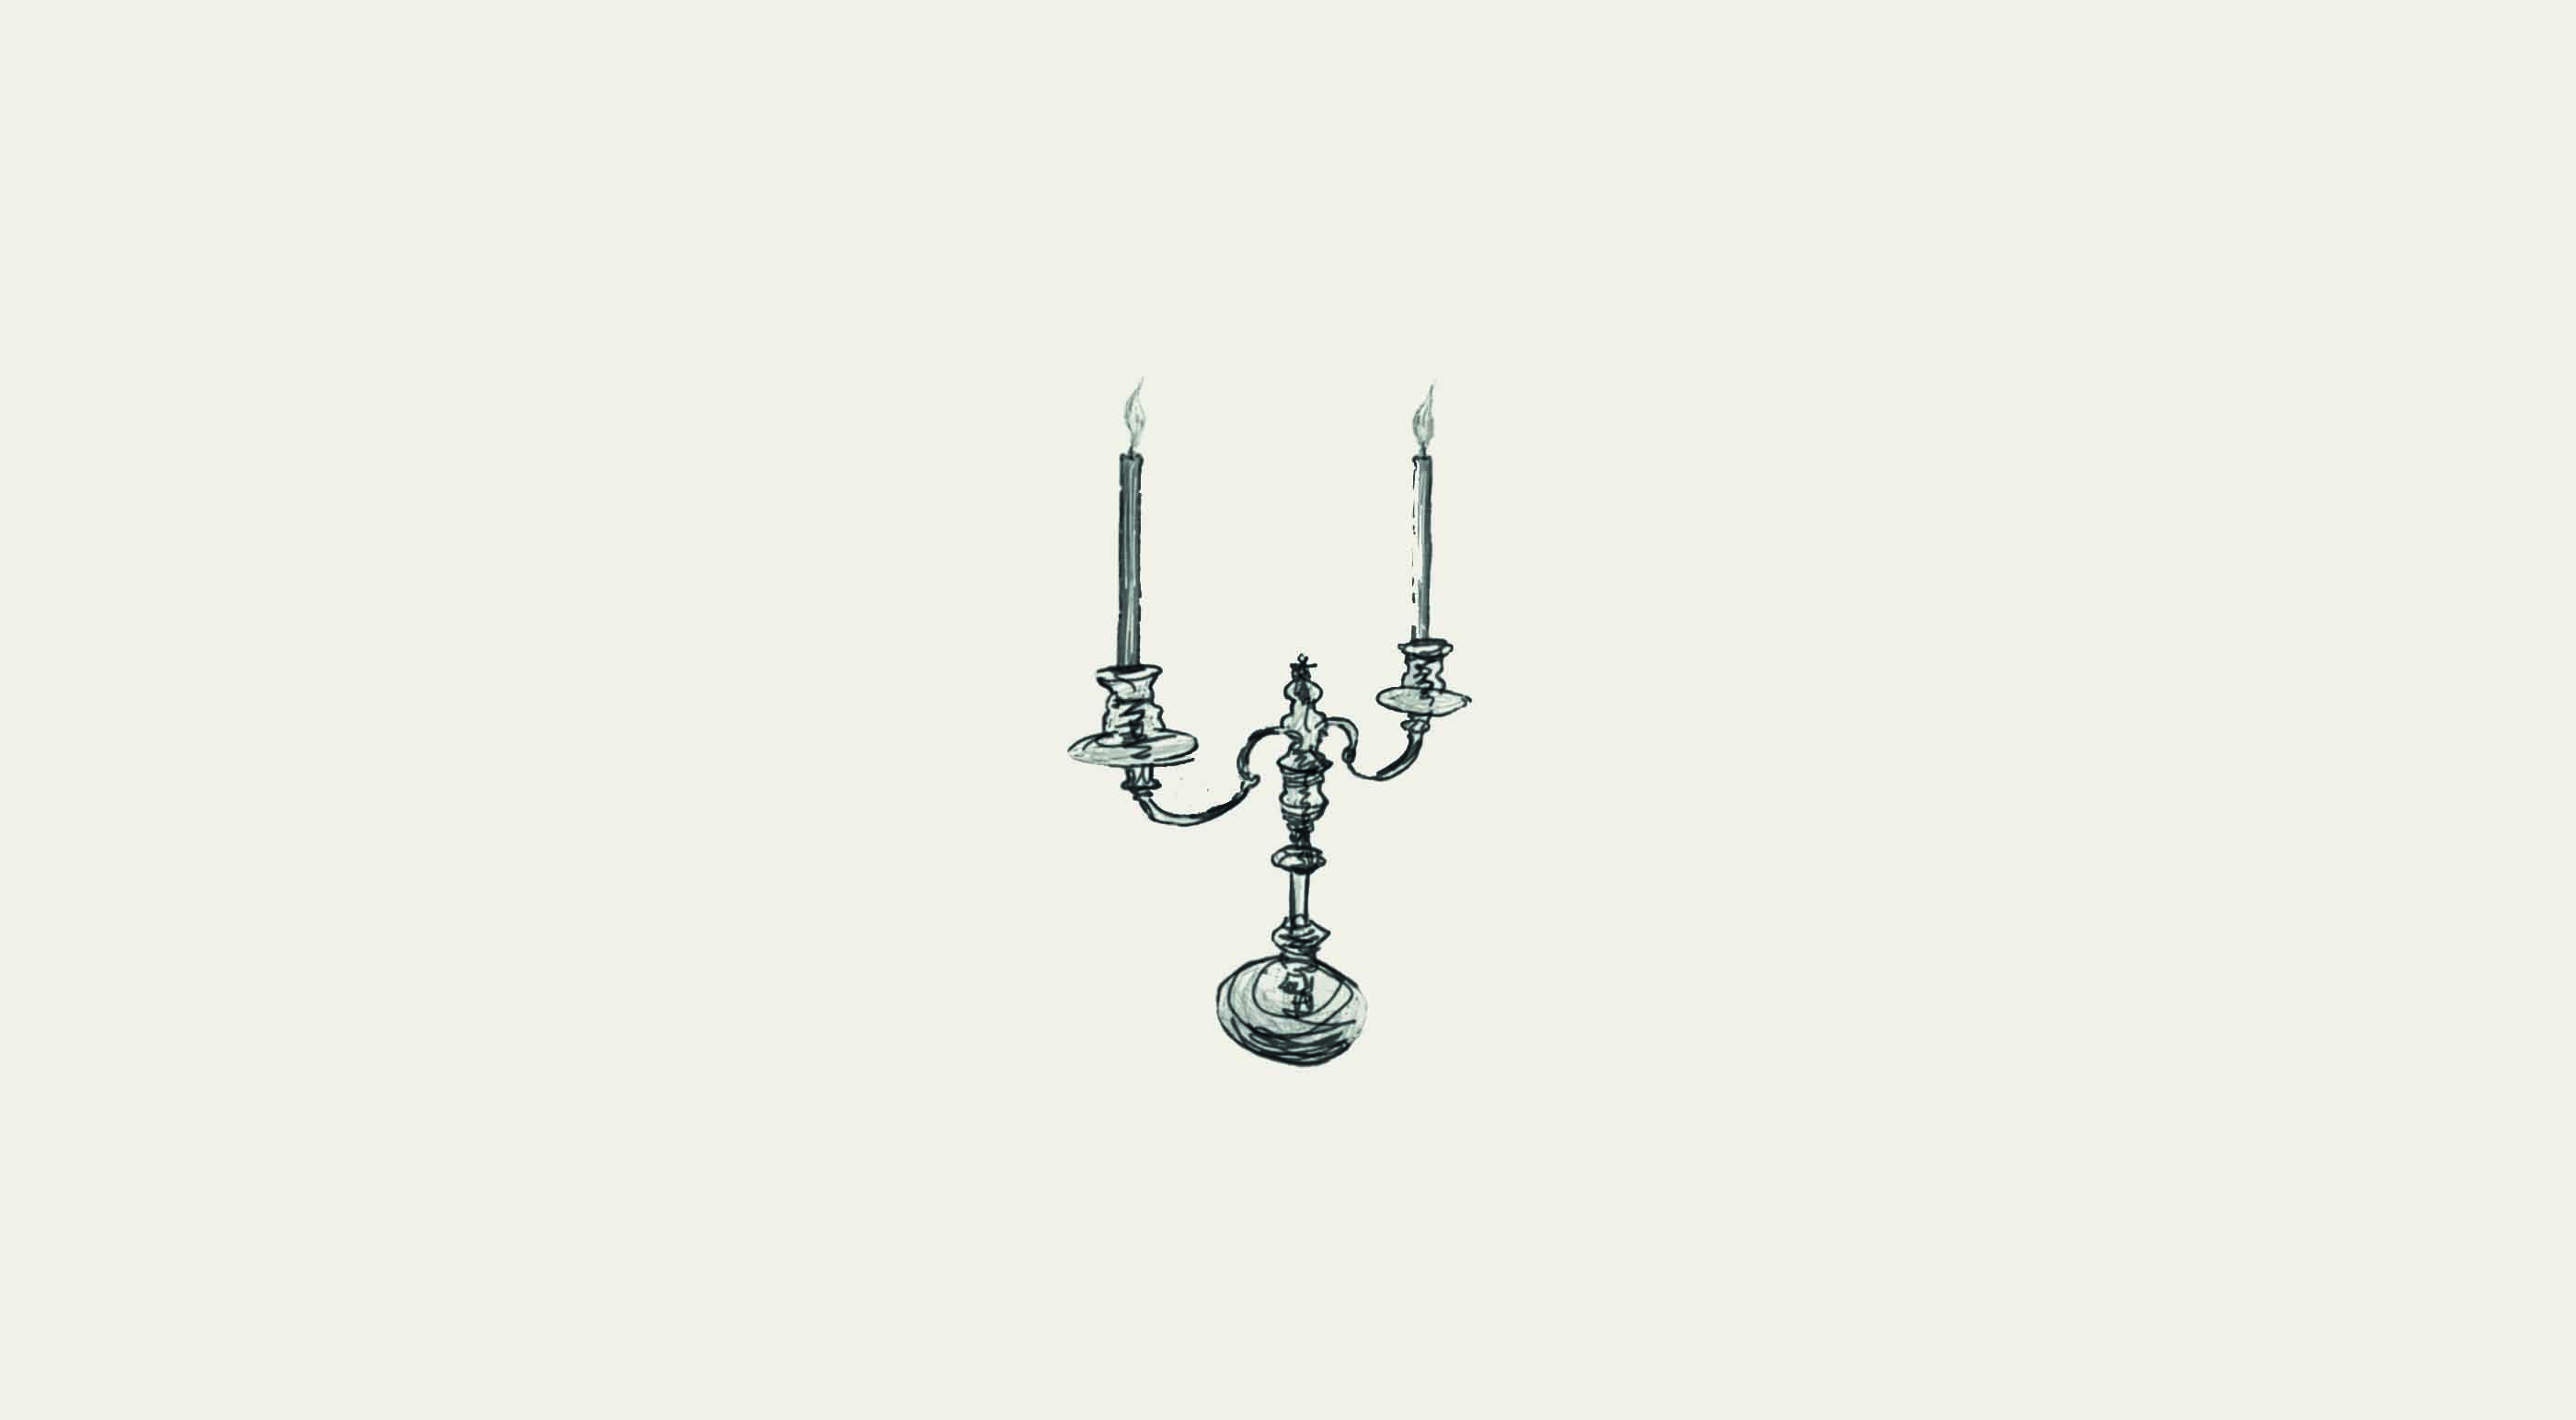 sketch of a two pronged candle holder